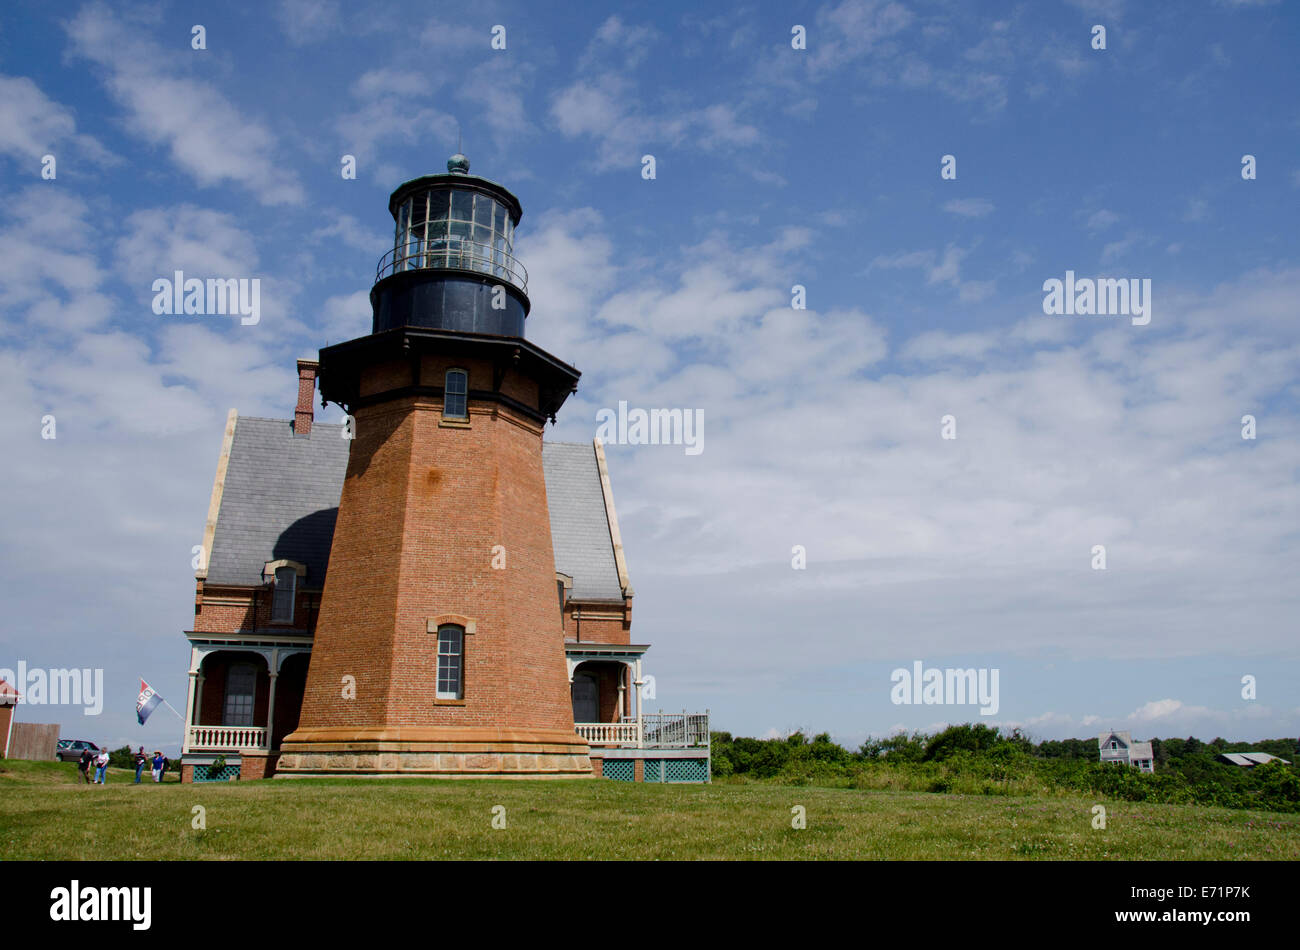 USA, Rhode Island, Block Island, Mohegan Bluffs, Southeast Lighthouse. National Historic Landmark, c. 1887. - Stock Image